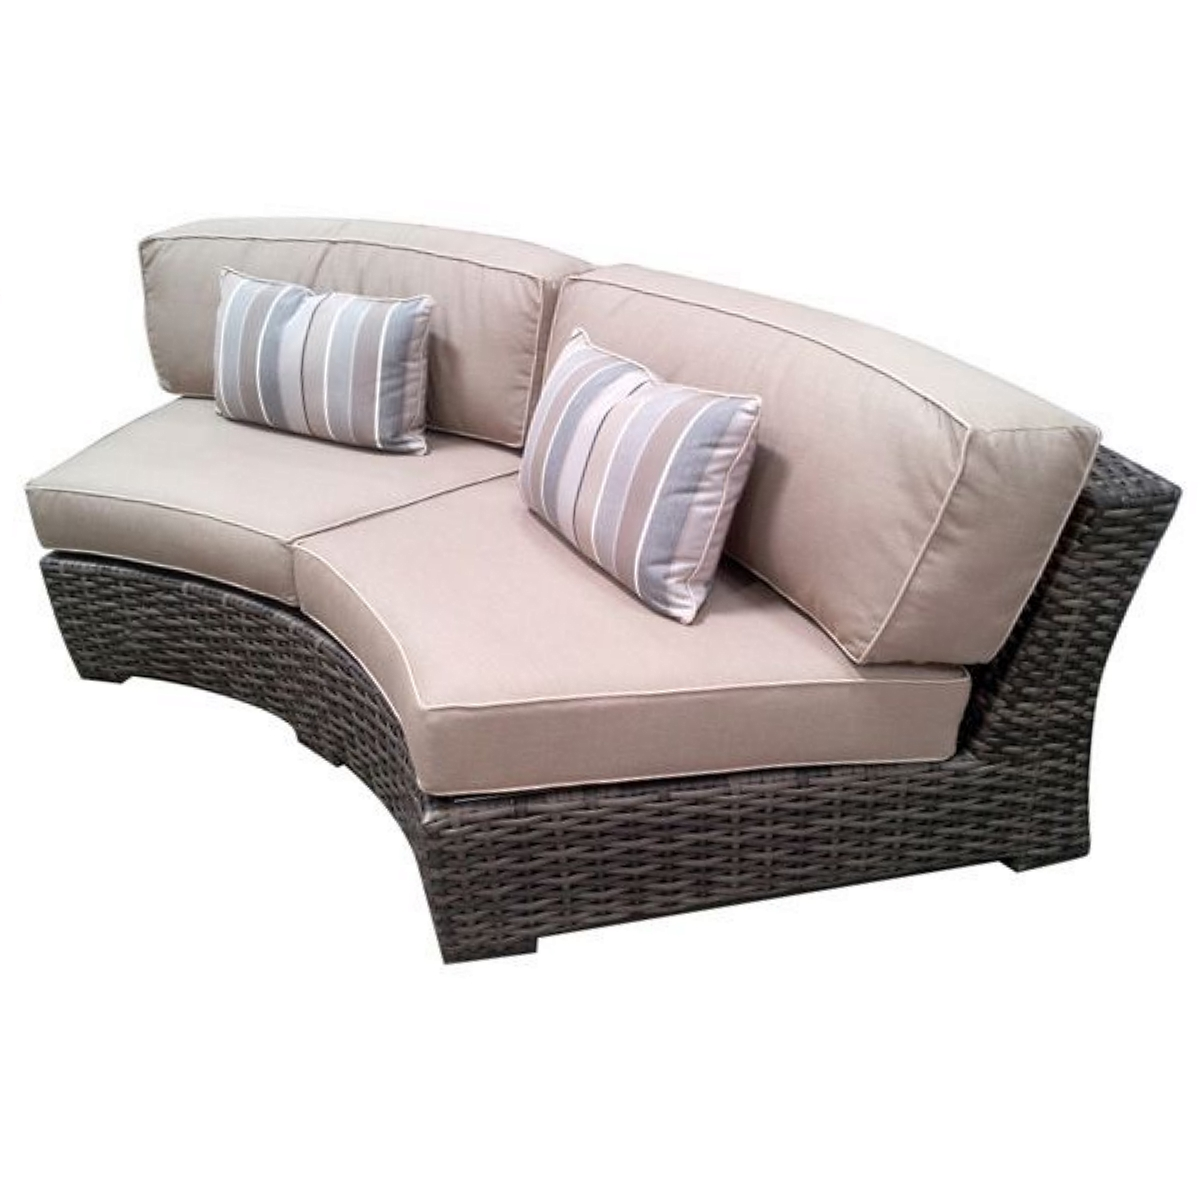 concord outdoor patio furniture curved sofa